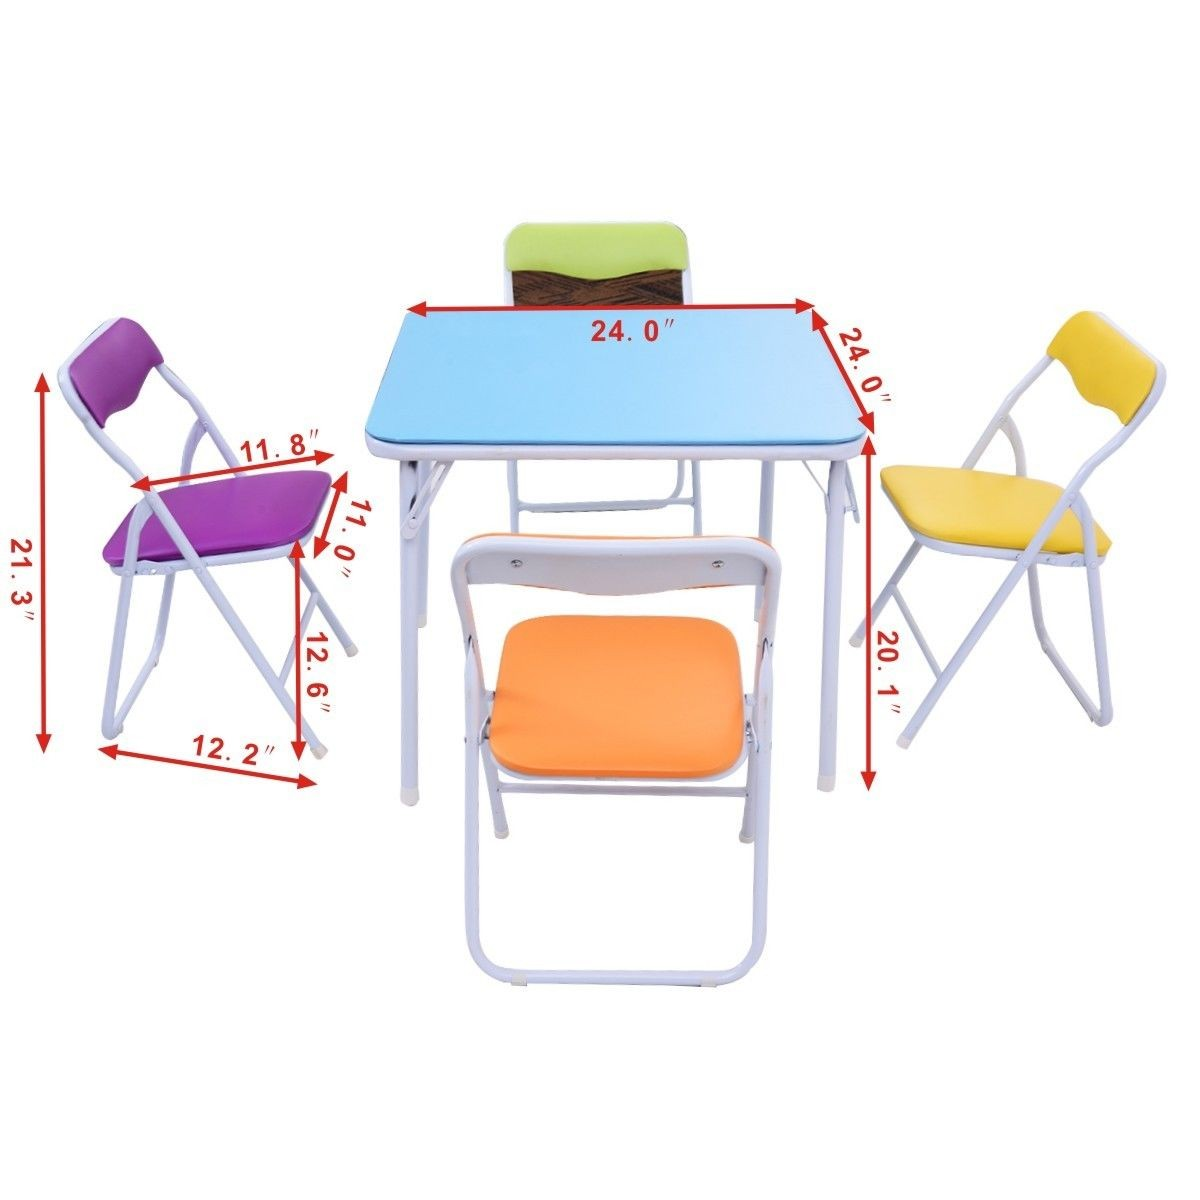 Folding Table And Chairs For Kids Home Flash Furniture Kids Colorful 5 Piece Folding Table